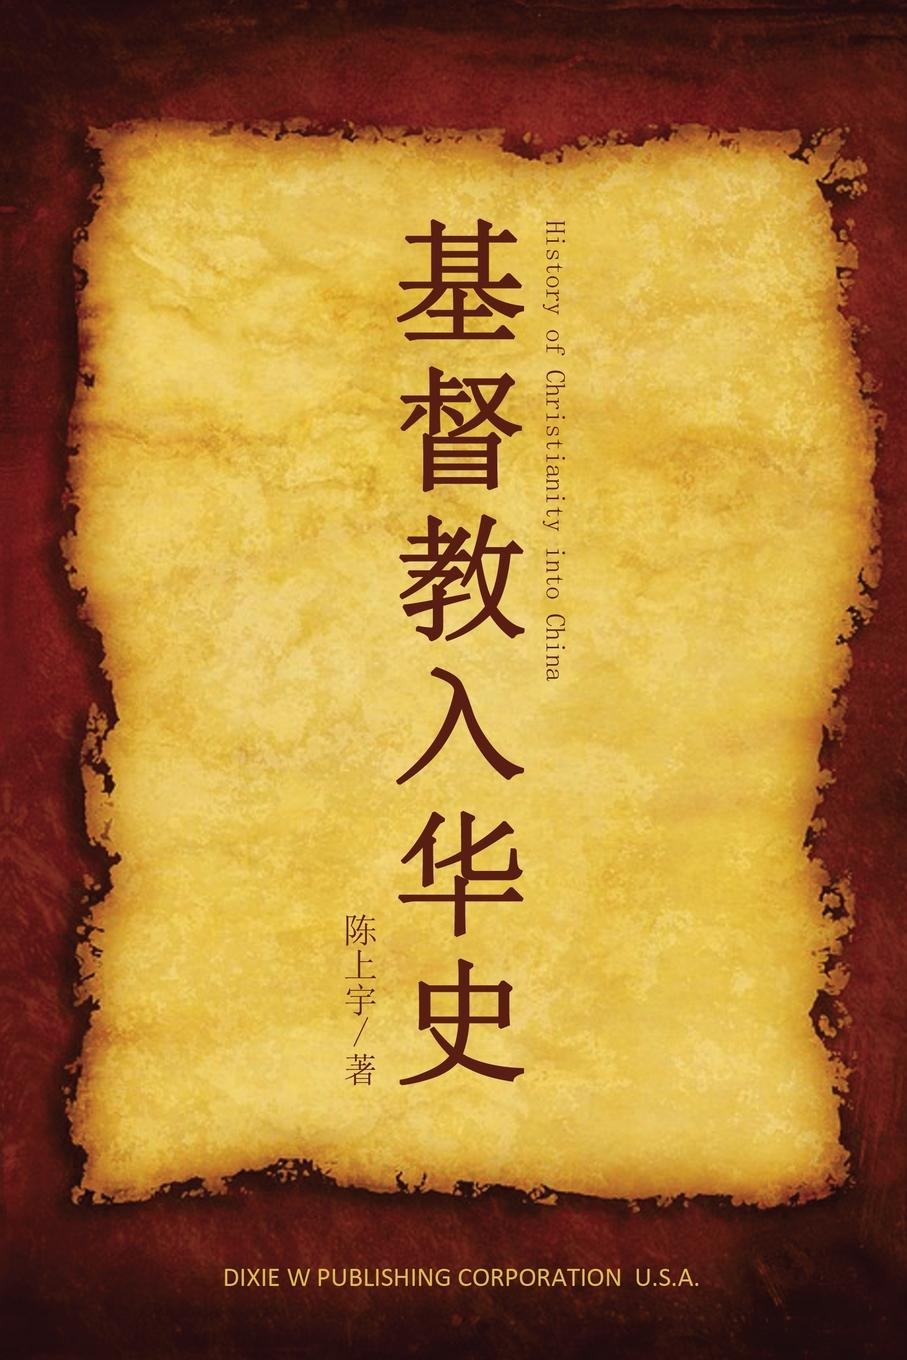 Shangyu Chen, China Soul for Christ Foundation History of Christianity into China 胡柏玲与历史课改同行:历史教学关键问题精解